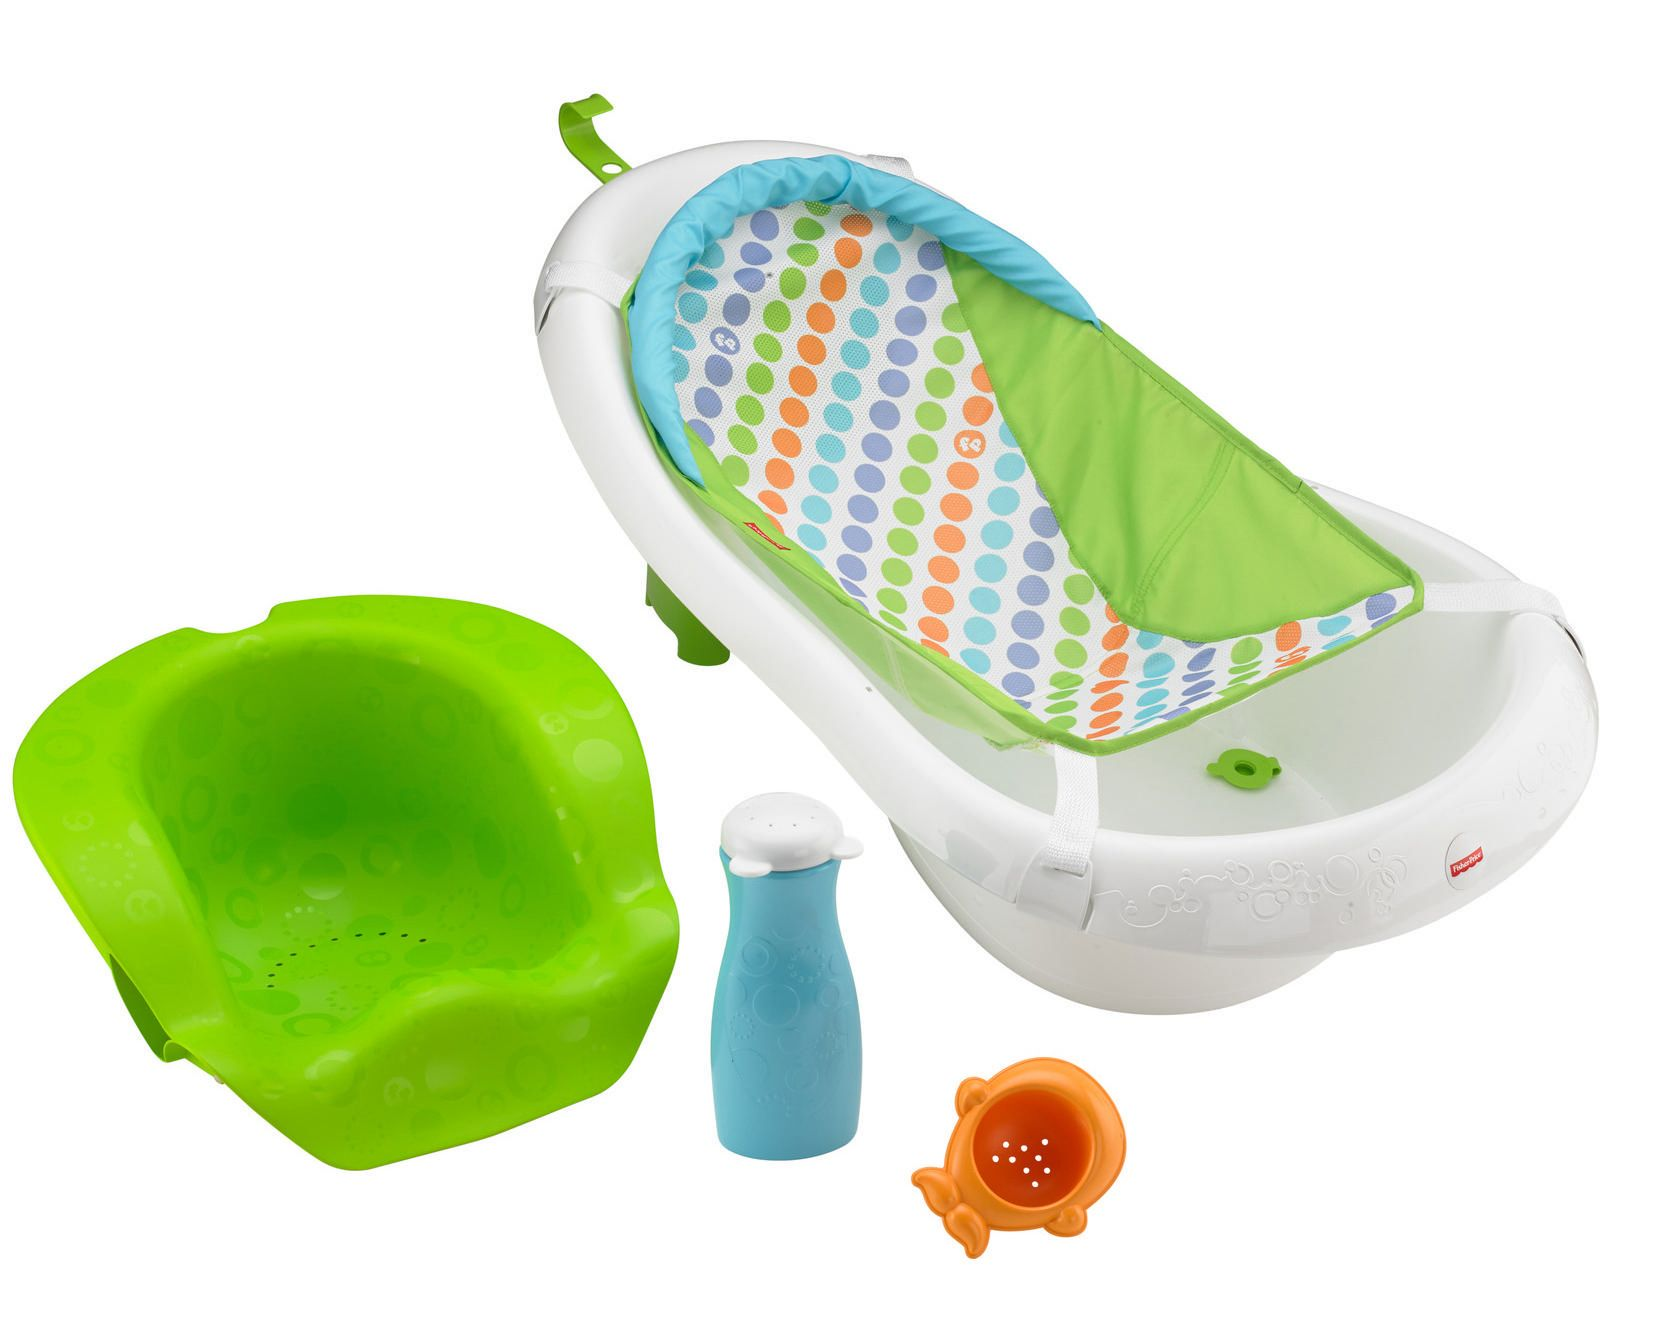 https://truimg.toysrus.com/product/images/fisher-price-4-in-1-sling ...